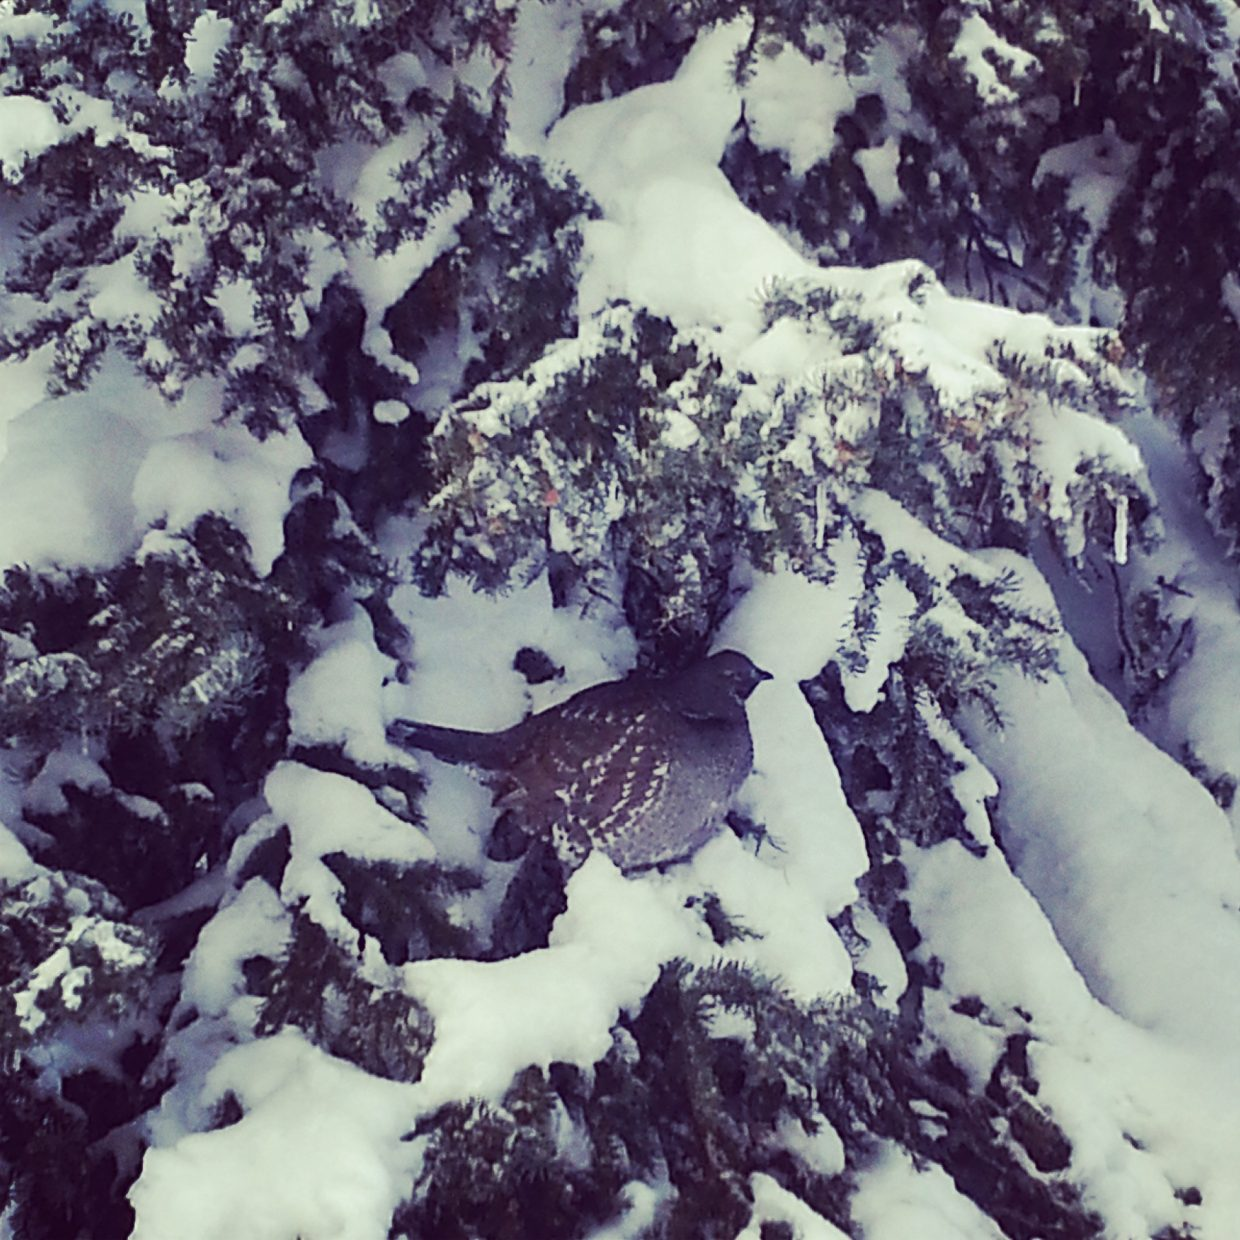 Ptarmigan enjoying the view on No Names. Submitted by: Mary Lourenco.